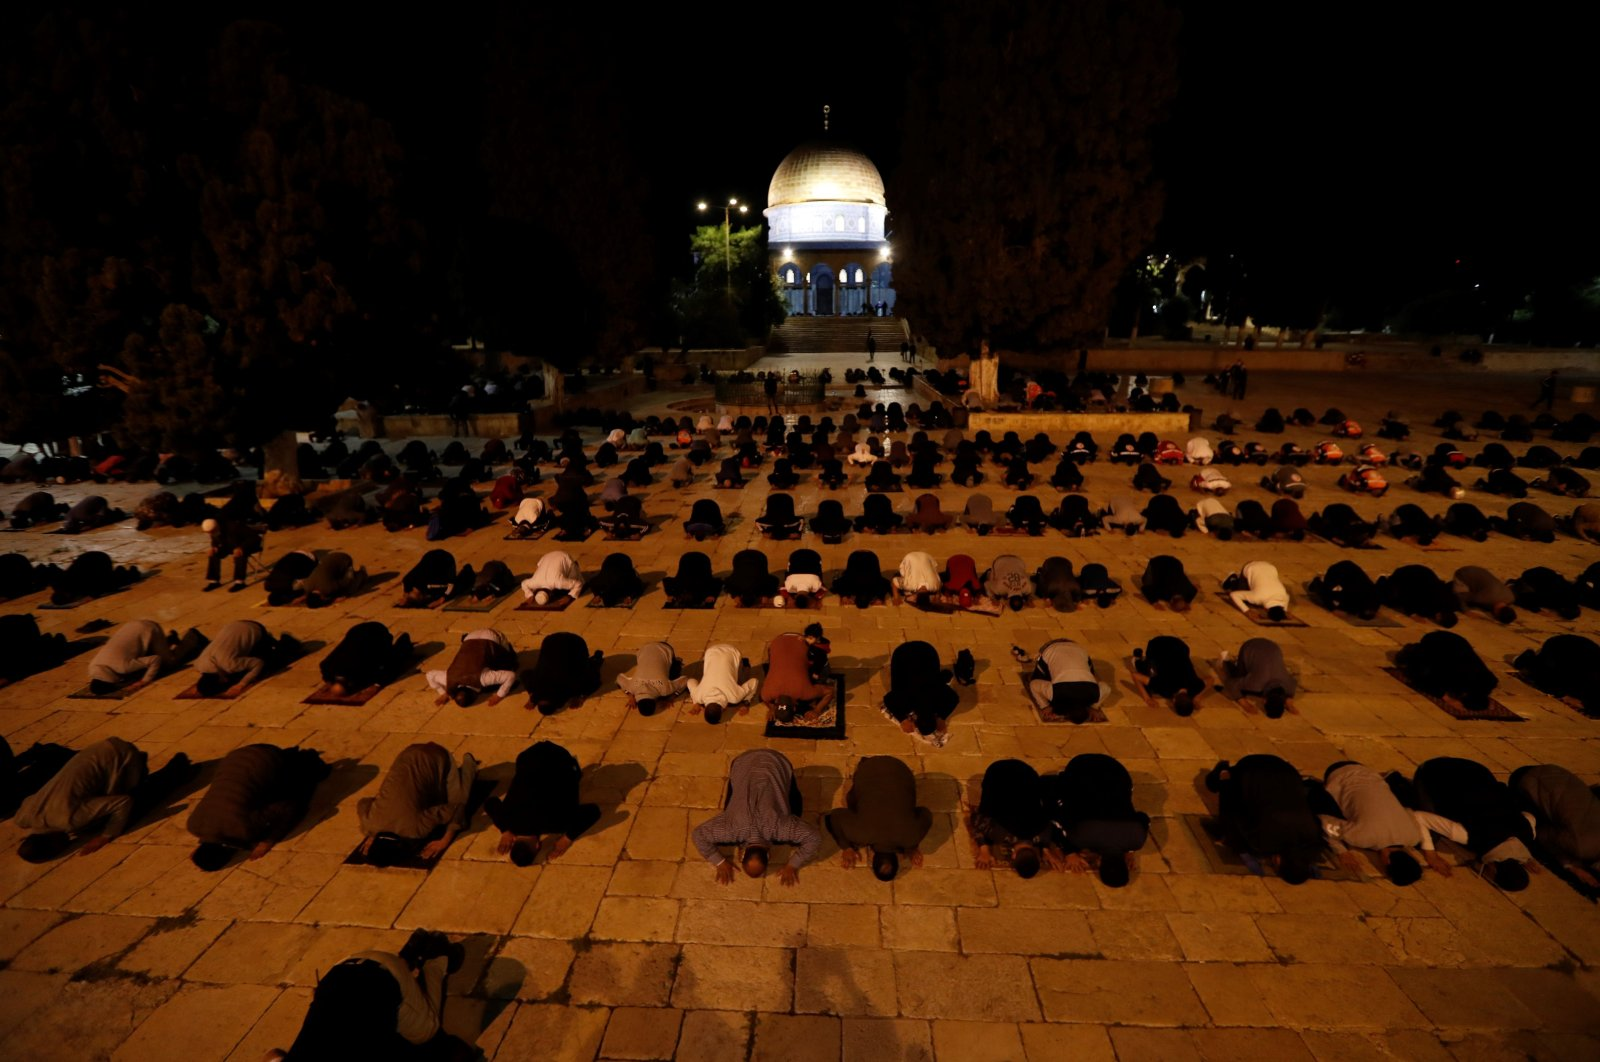 Palestinian worshippers pray at the al-Aqsa mosque compound, Islam's third holiest site, in Jerusalem's Old City on June 1, 2020,  after a two-month closure due to the COVID-19 pandemic. (AFP Photo)